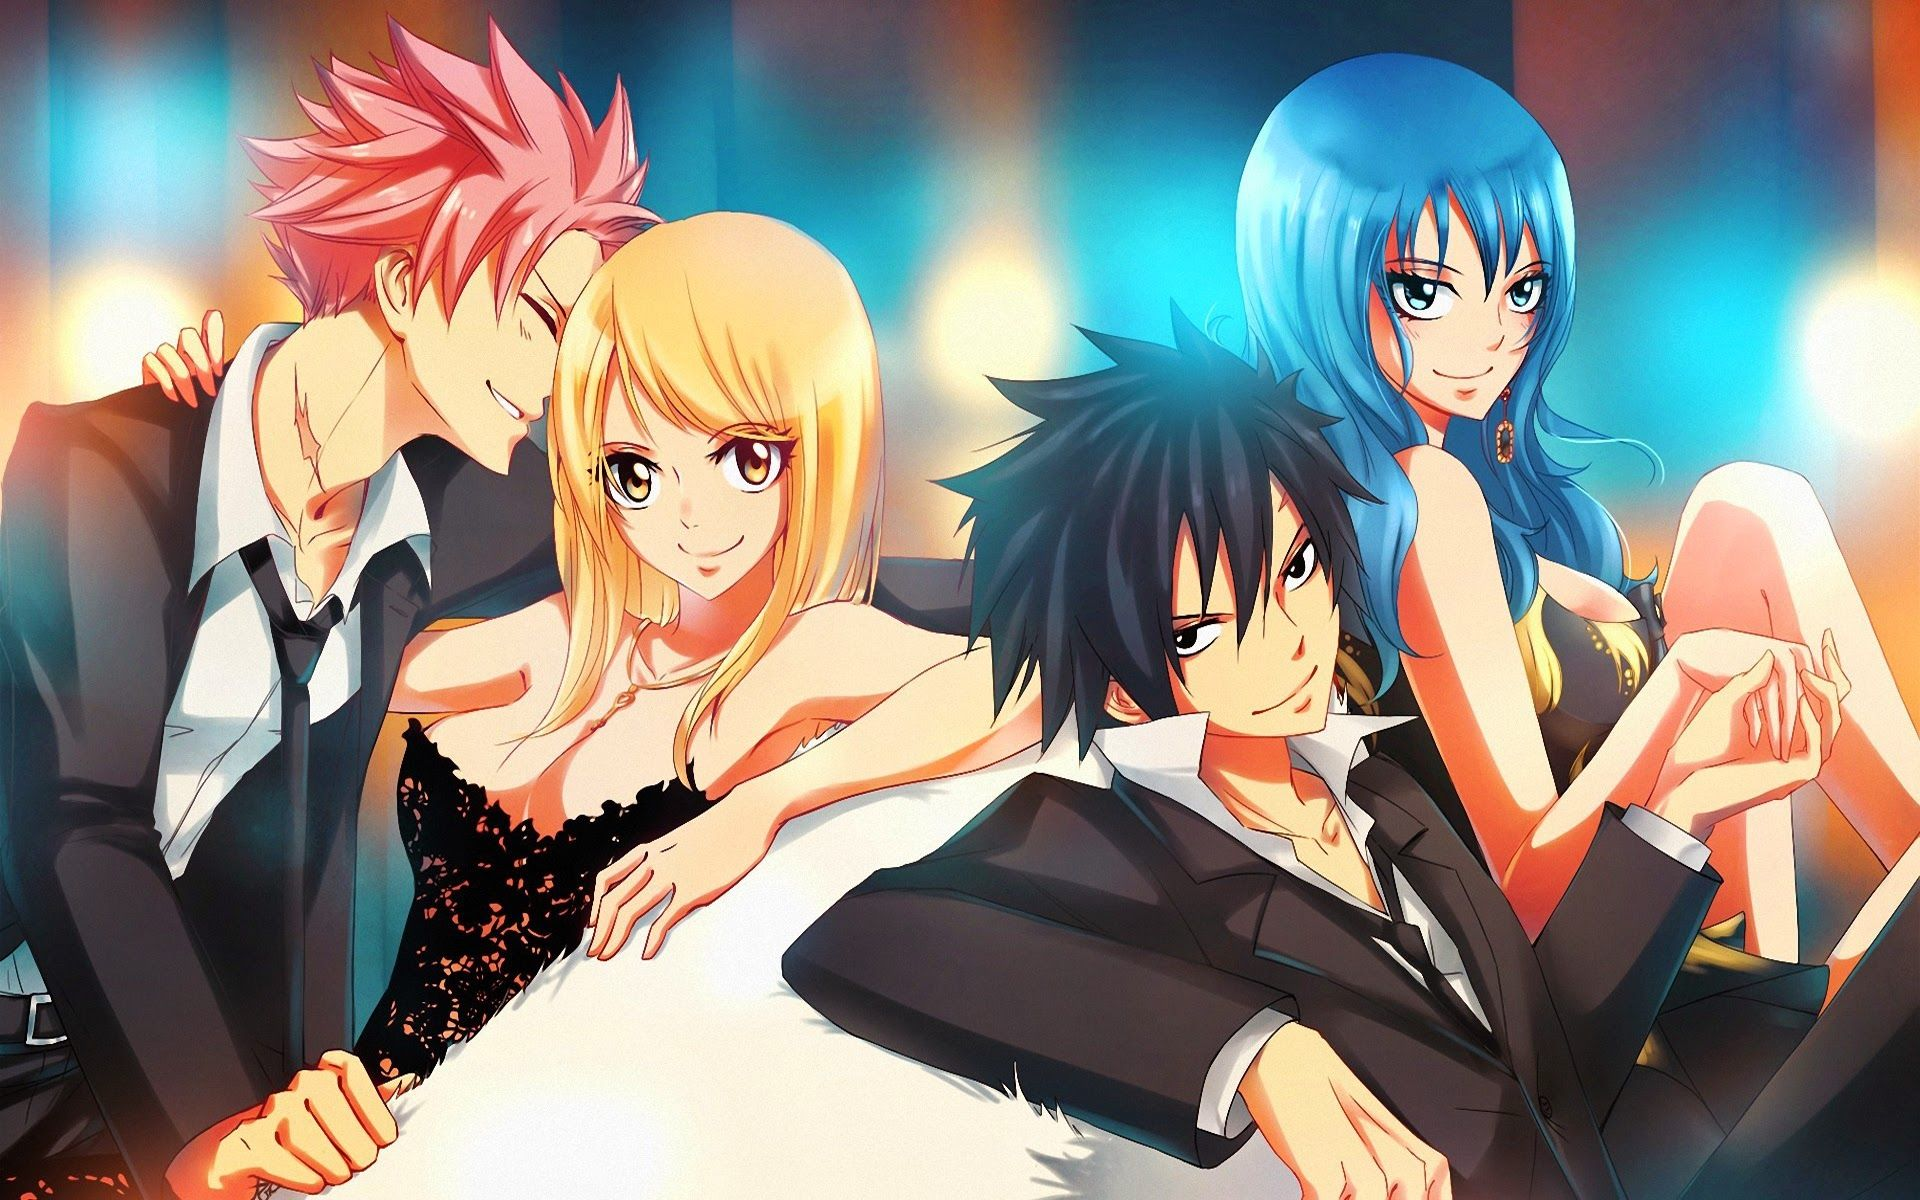 Baby Fairy Tail Lucy File Name natsulucyjuviagray